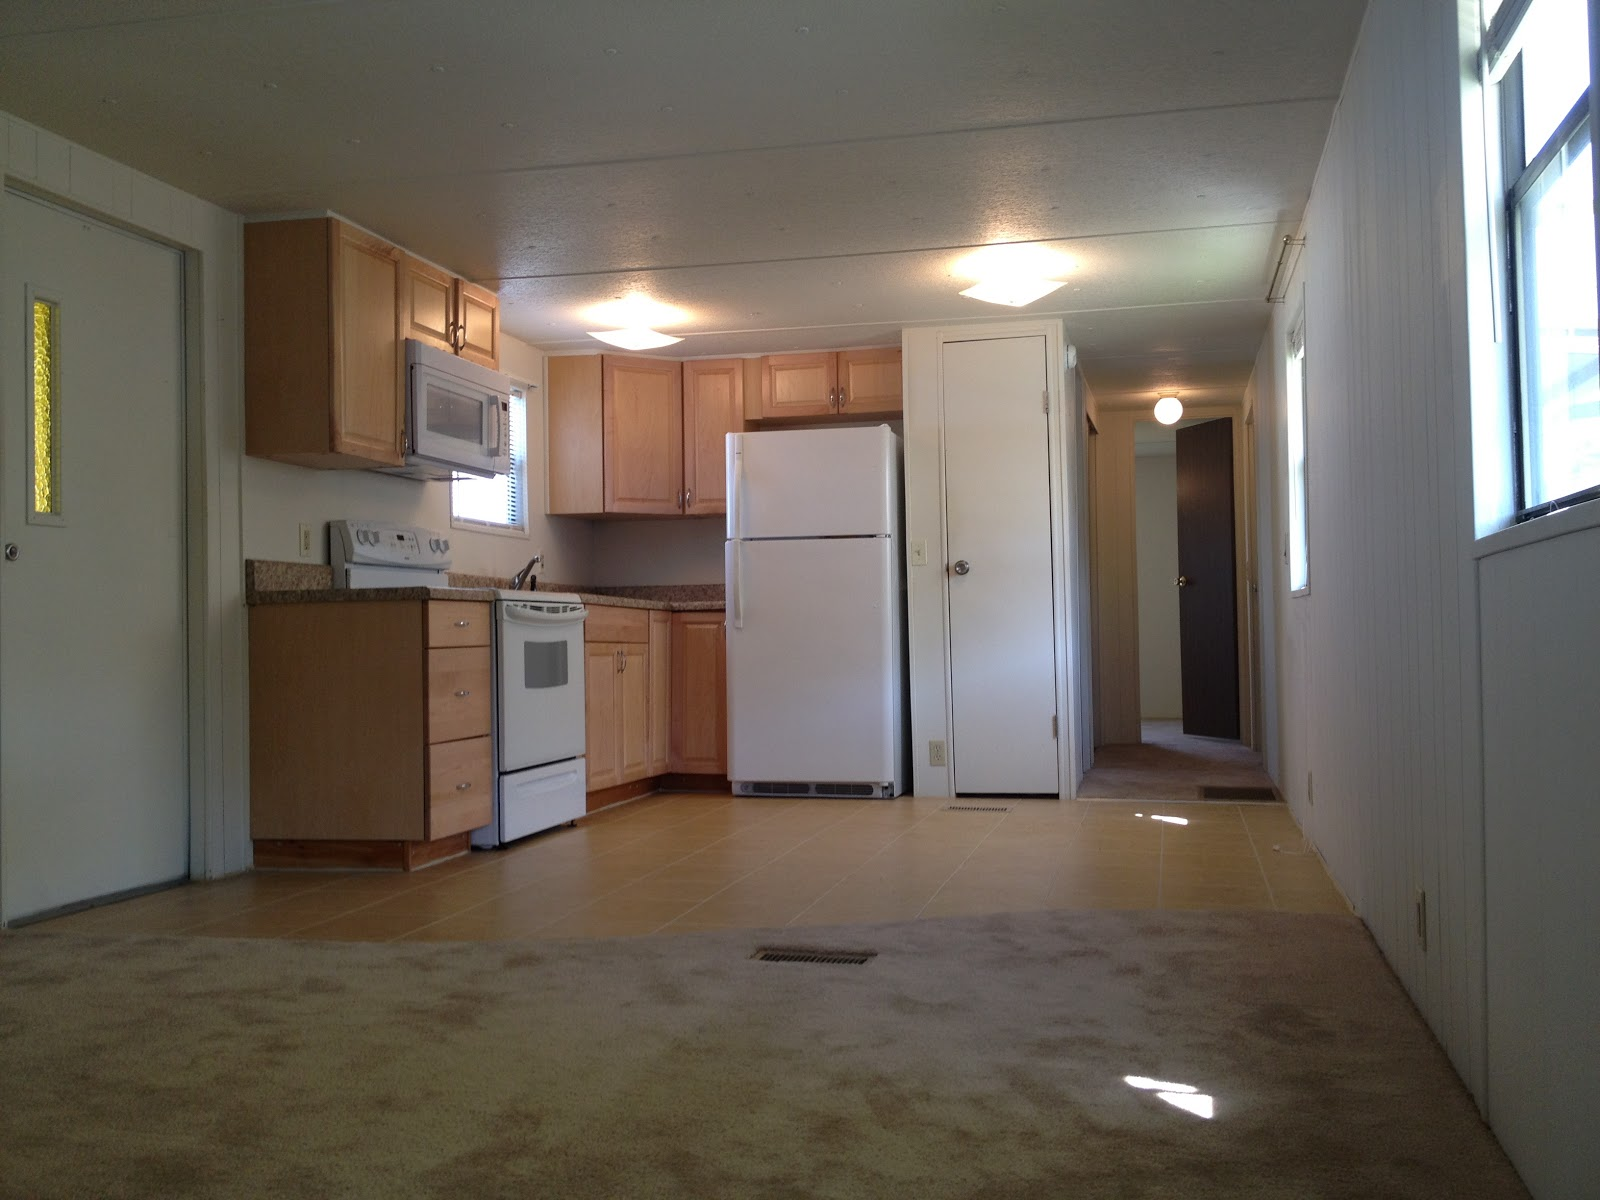 Nice One Bedroom One Bath Mobile Home #8: Tropical Trail Villa SOLD 2 Bedroom 1 Bath Mobile Home For